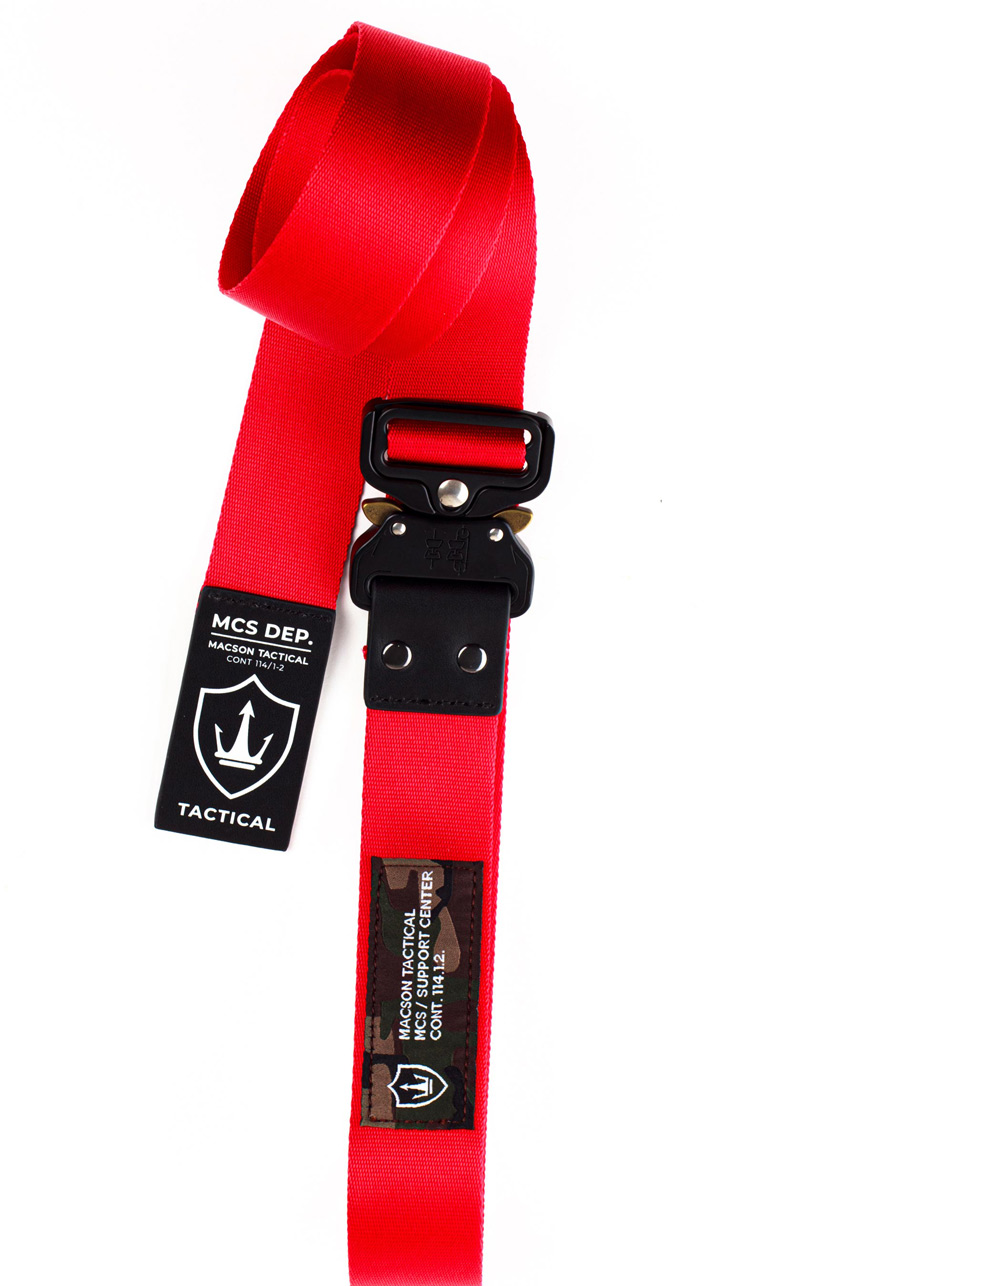 Red tactical carabiner belt. - Backside